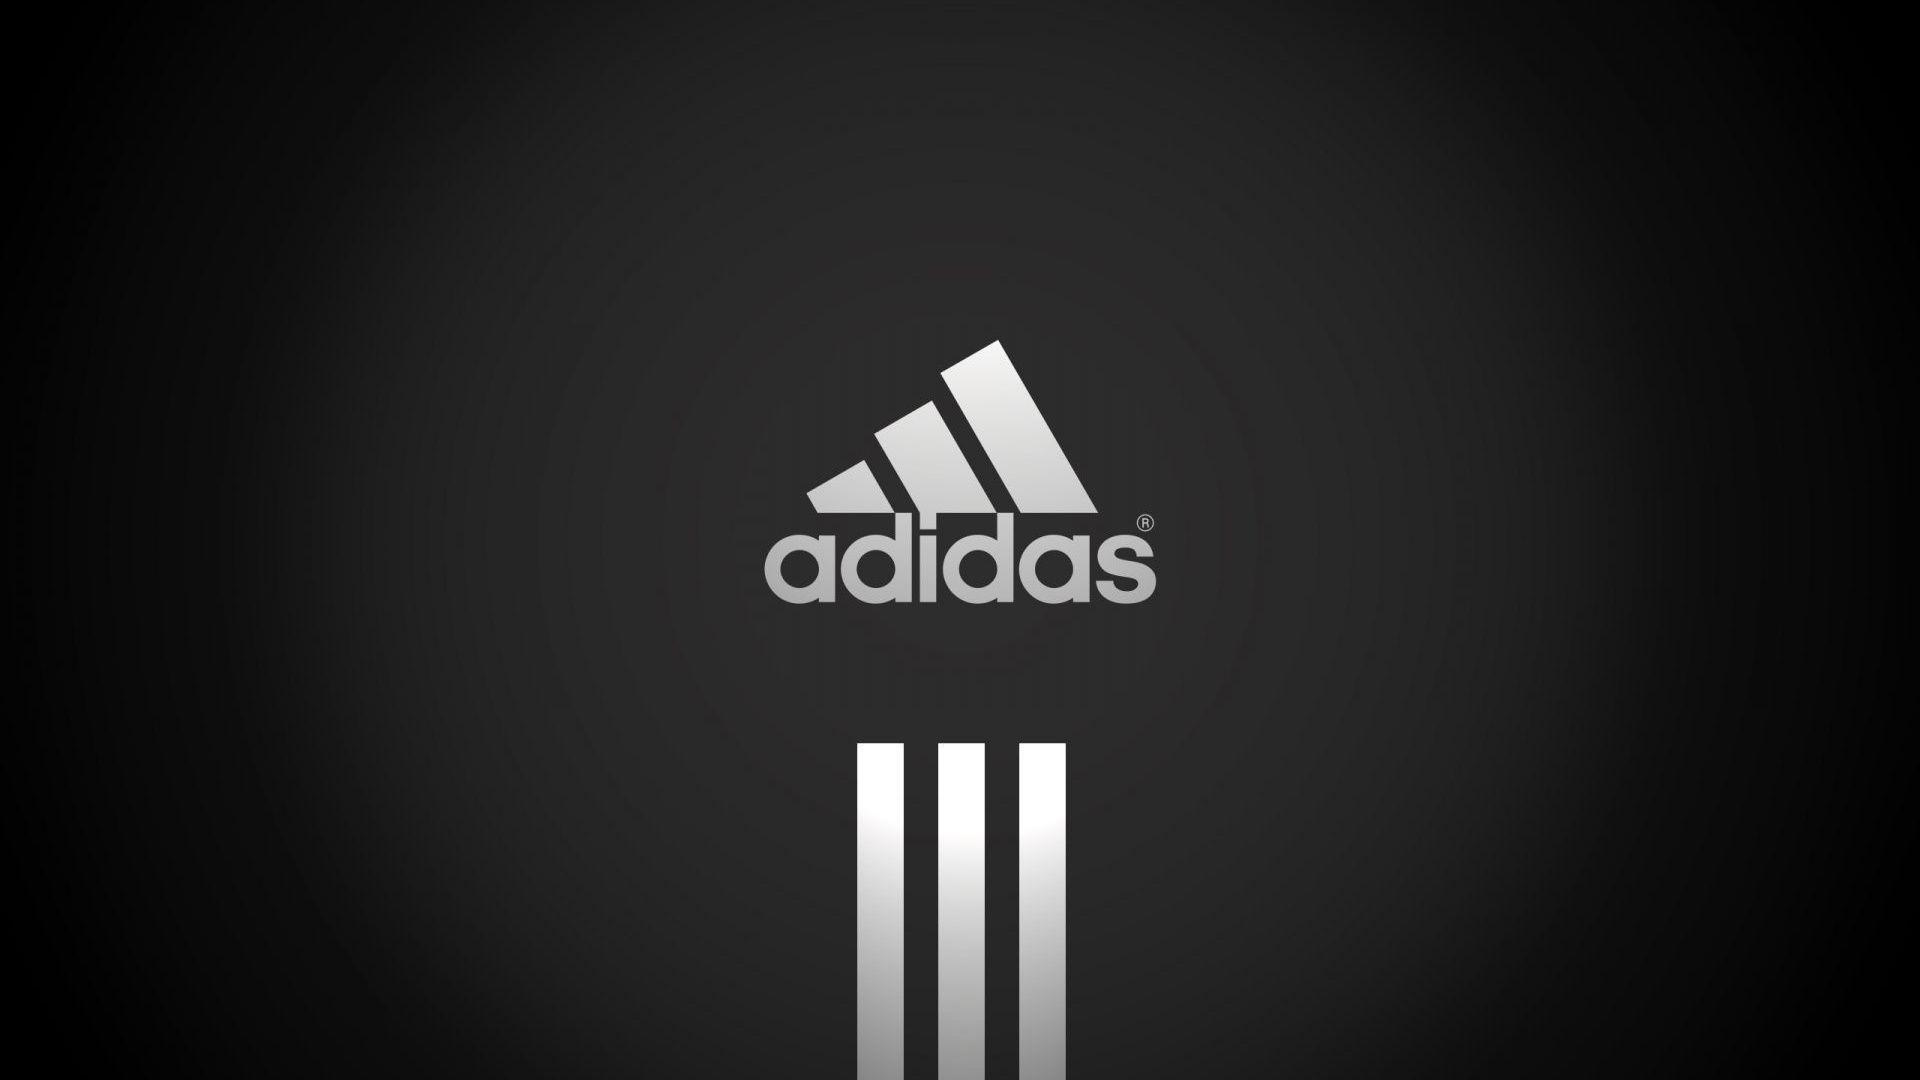 Wallpaper HD 1080p Black And White Adidas - Tuffboys.com